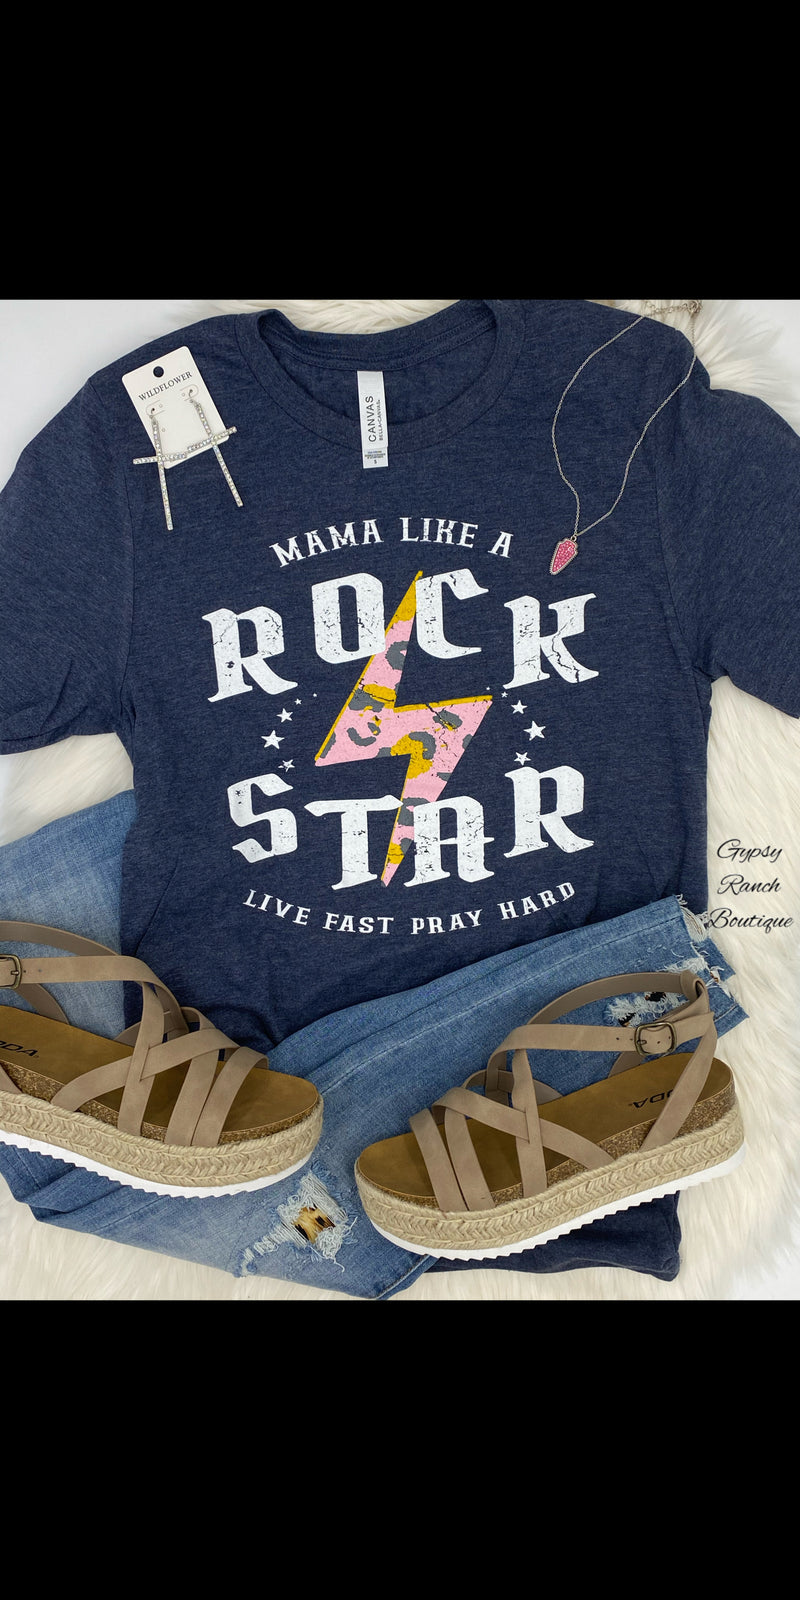 MaMa Like A Rockstar Top - Also in Plus Size